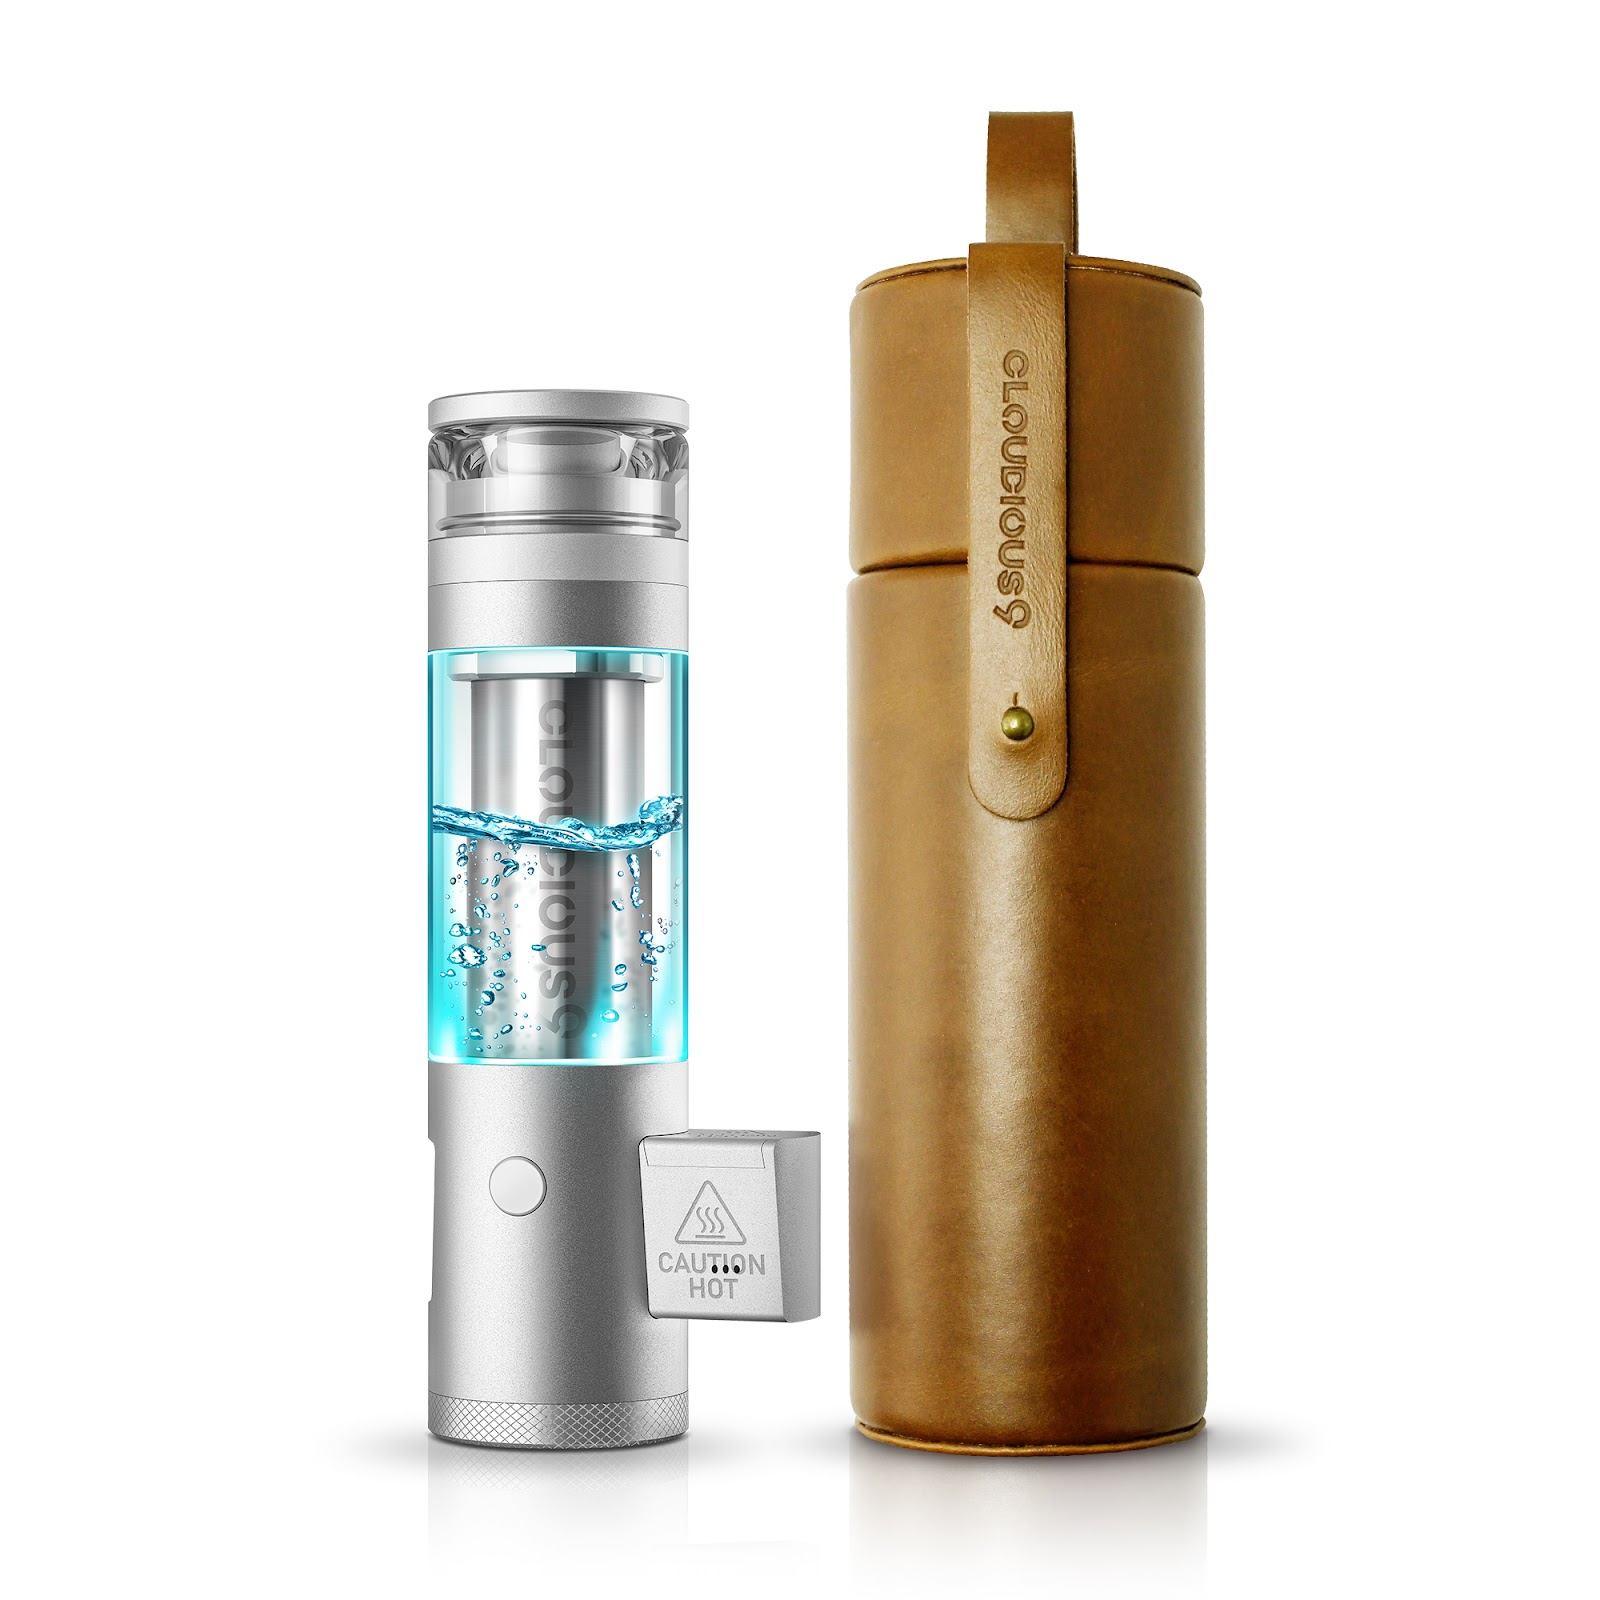 The Cloudious9 Hydrology9 NX pictured here is the latest, best vaporizer. Switch between flower and concentrate with ease.